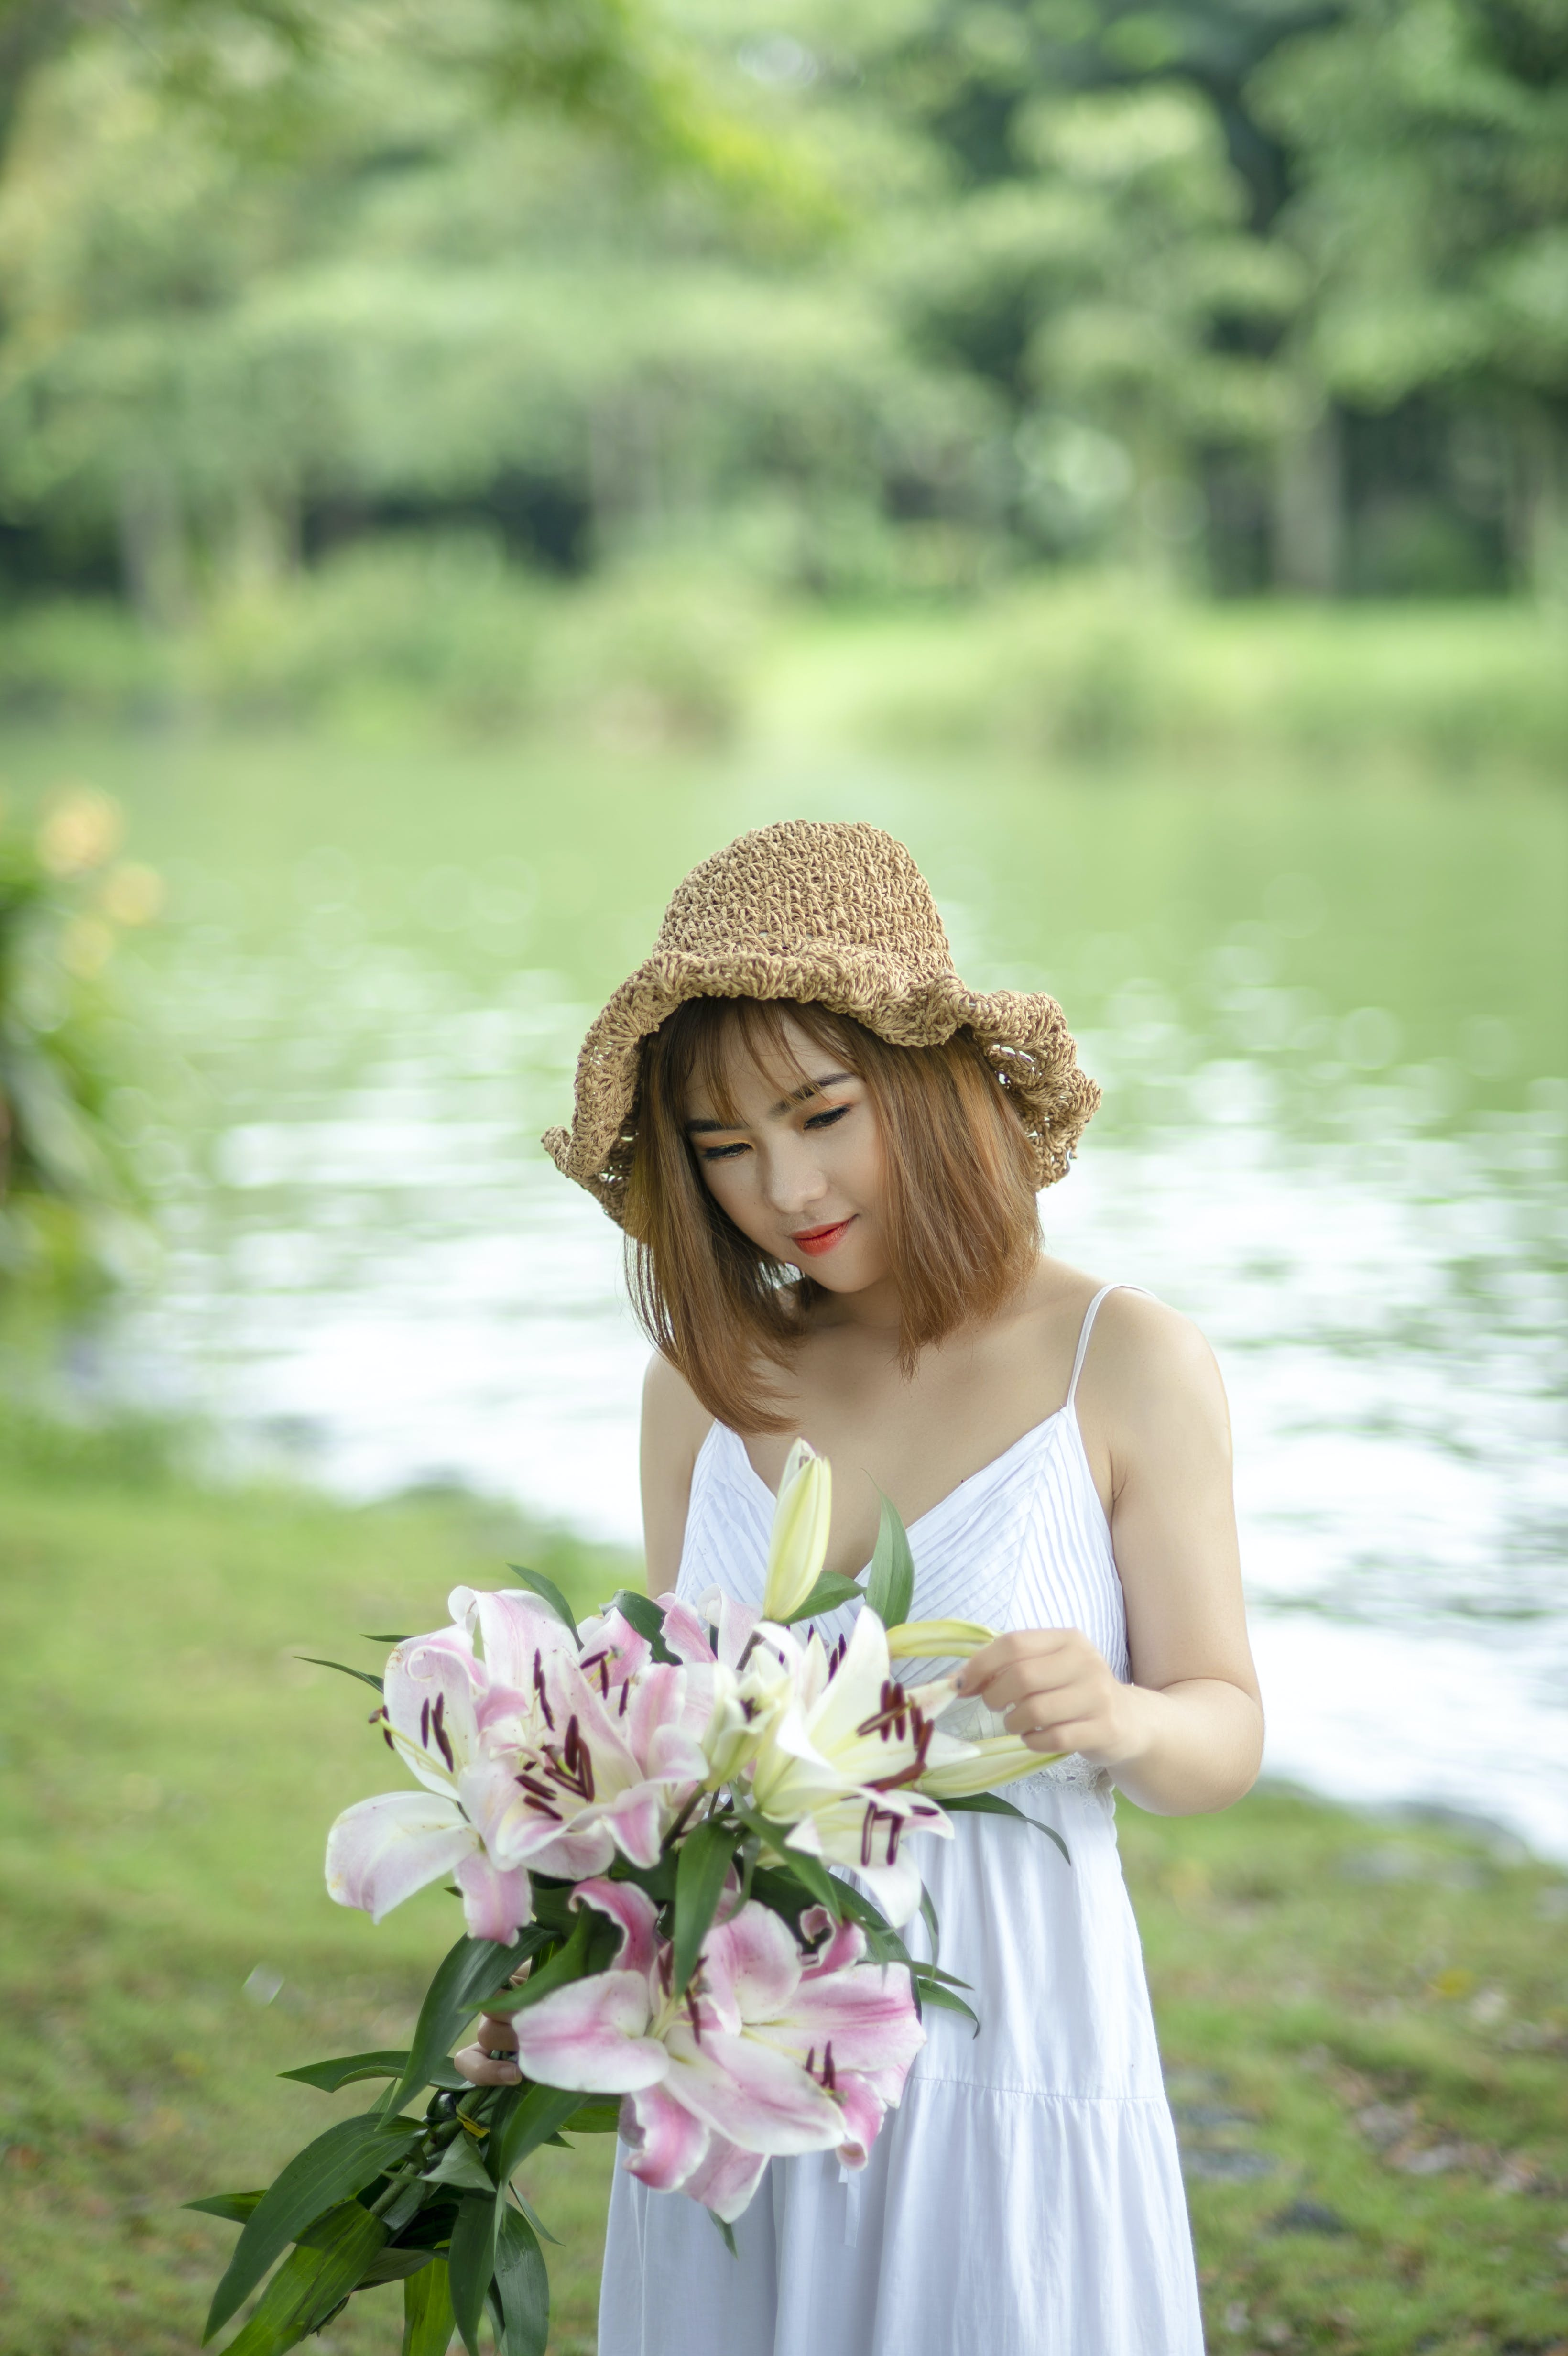 Photo of Woman Holding Bouquet of Flowers.